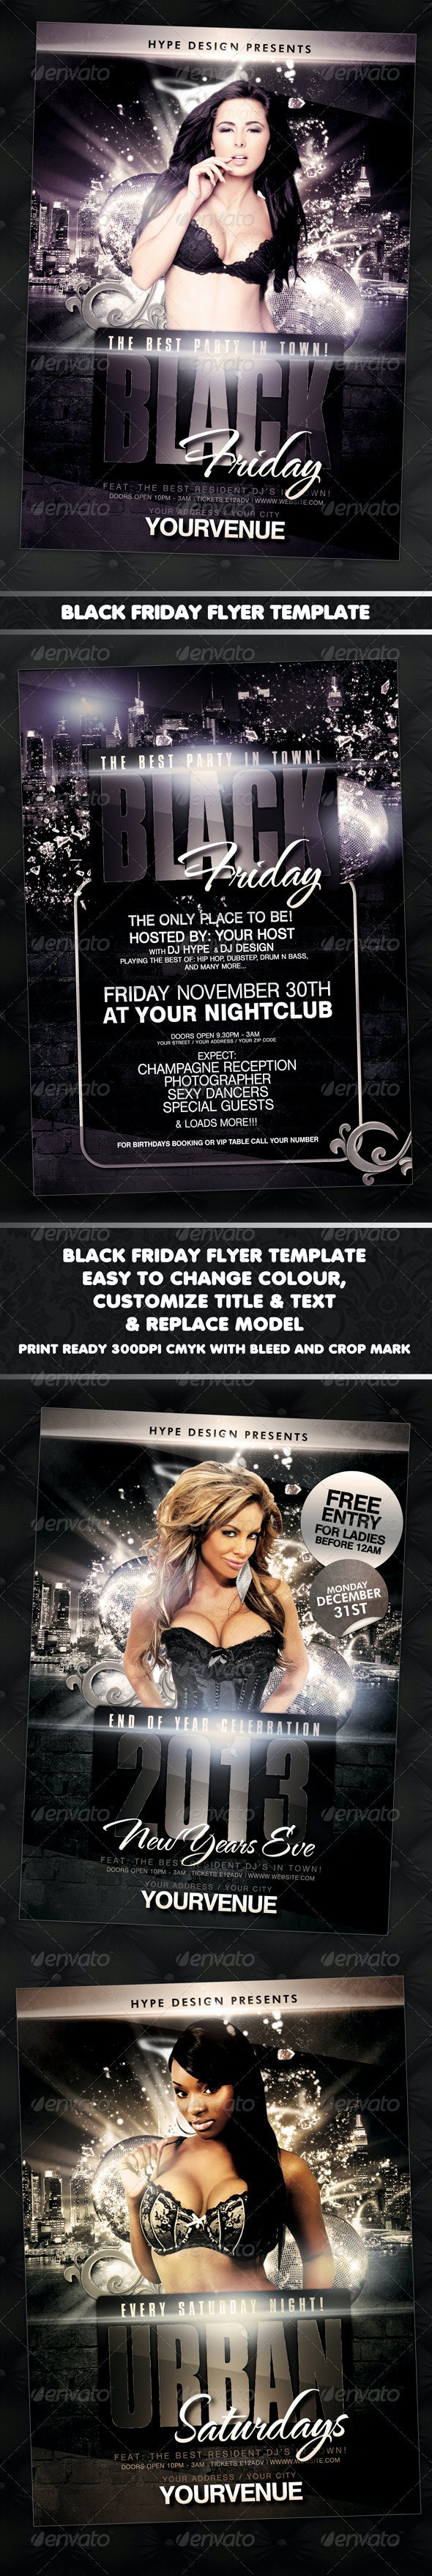 Black Fridays New Years Urban Flyer Template - Clubs & Parties Events